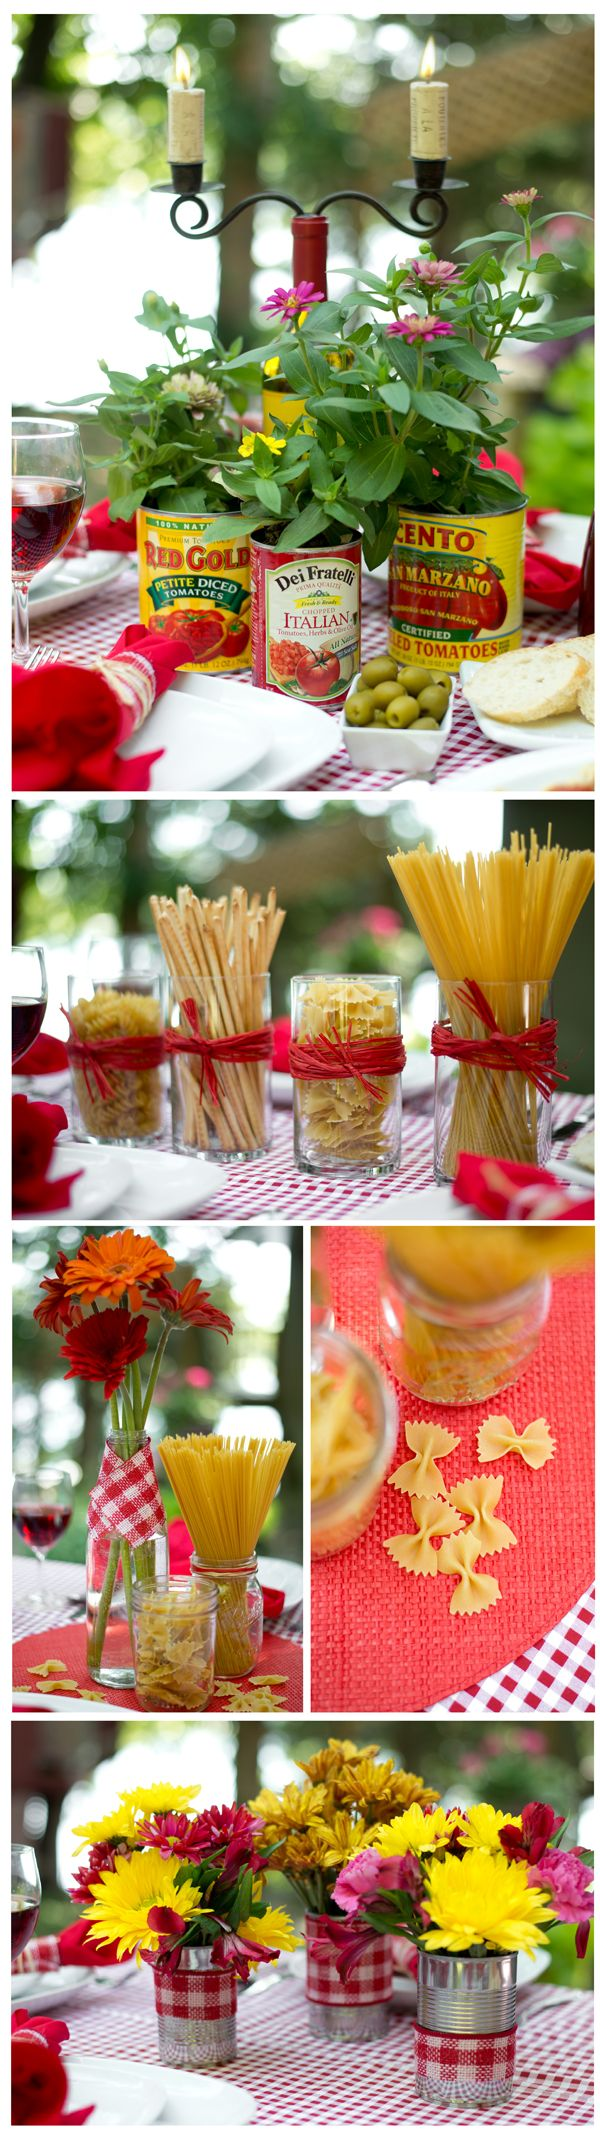 Great, simple & fun Italian theme table or buffet centerpieces. I'm doing this for my next large gang meal. P.S. At a local Italian restaurant they used very large cans to serve as pizza holders. They'd be fun to elevate platters too, like cake plates. Easy storage, just nest varied can sizes inside each other. Heading out to HG, TJs & Marshalls for colored, interesting pasta. Wonder if I can find those drippy candles to stick in empty wine bottles too?